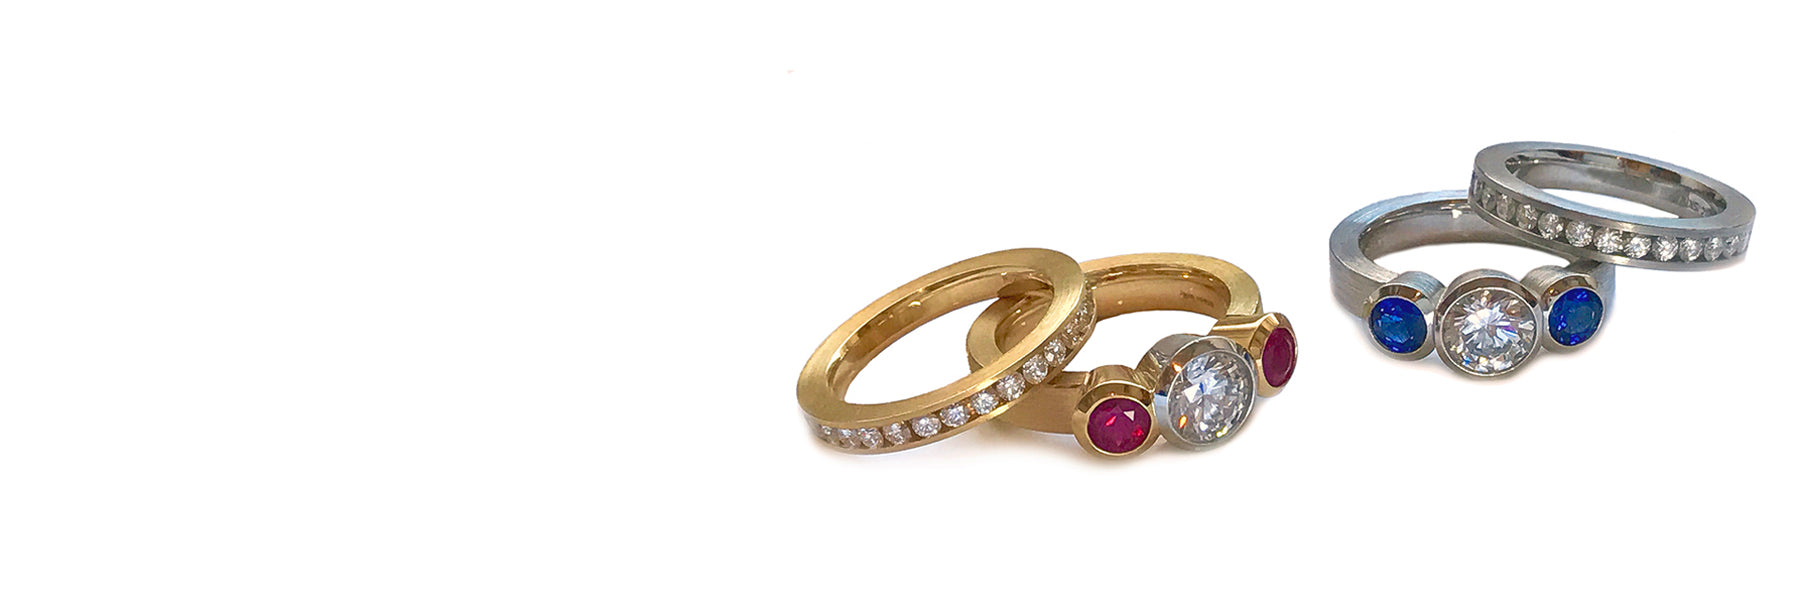 3 stone engagement rings with channel set wedding bands in 18k with rubies or Pt. with blue sapphires, both with diamonds.